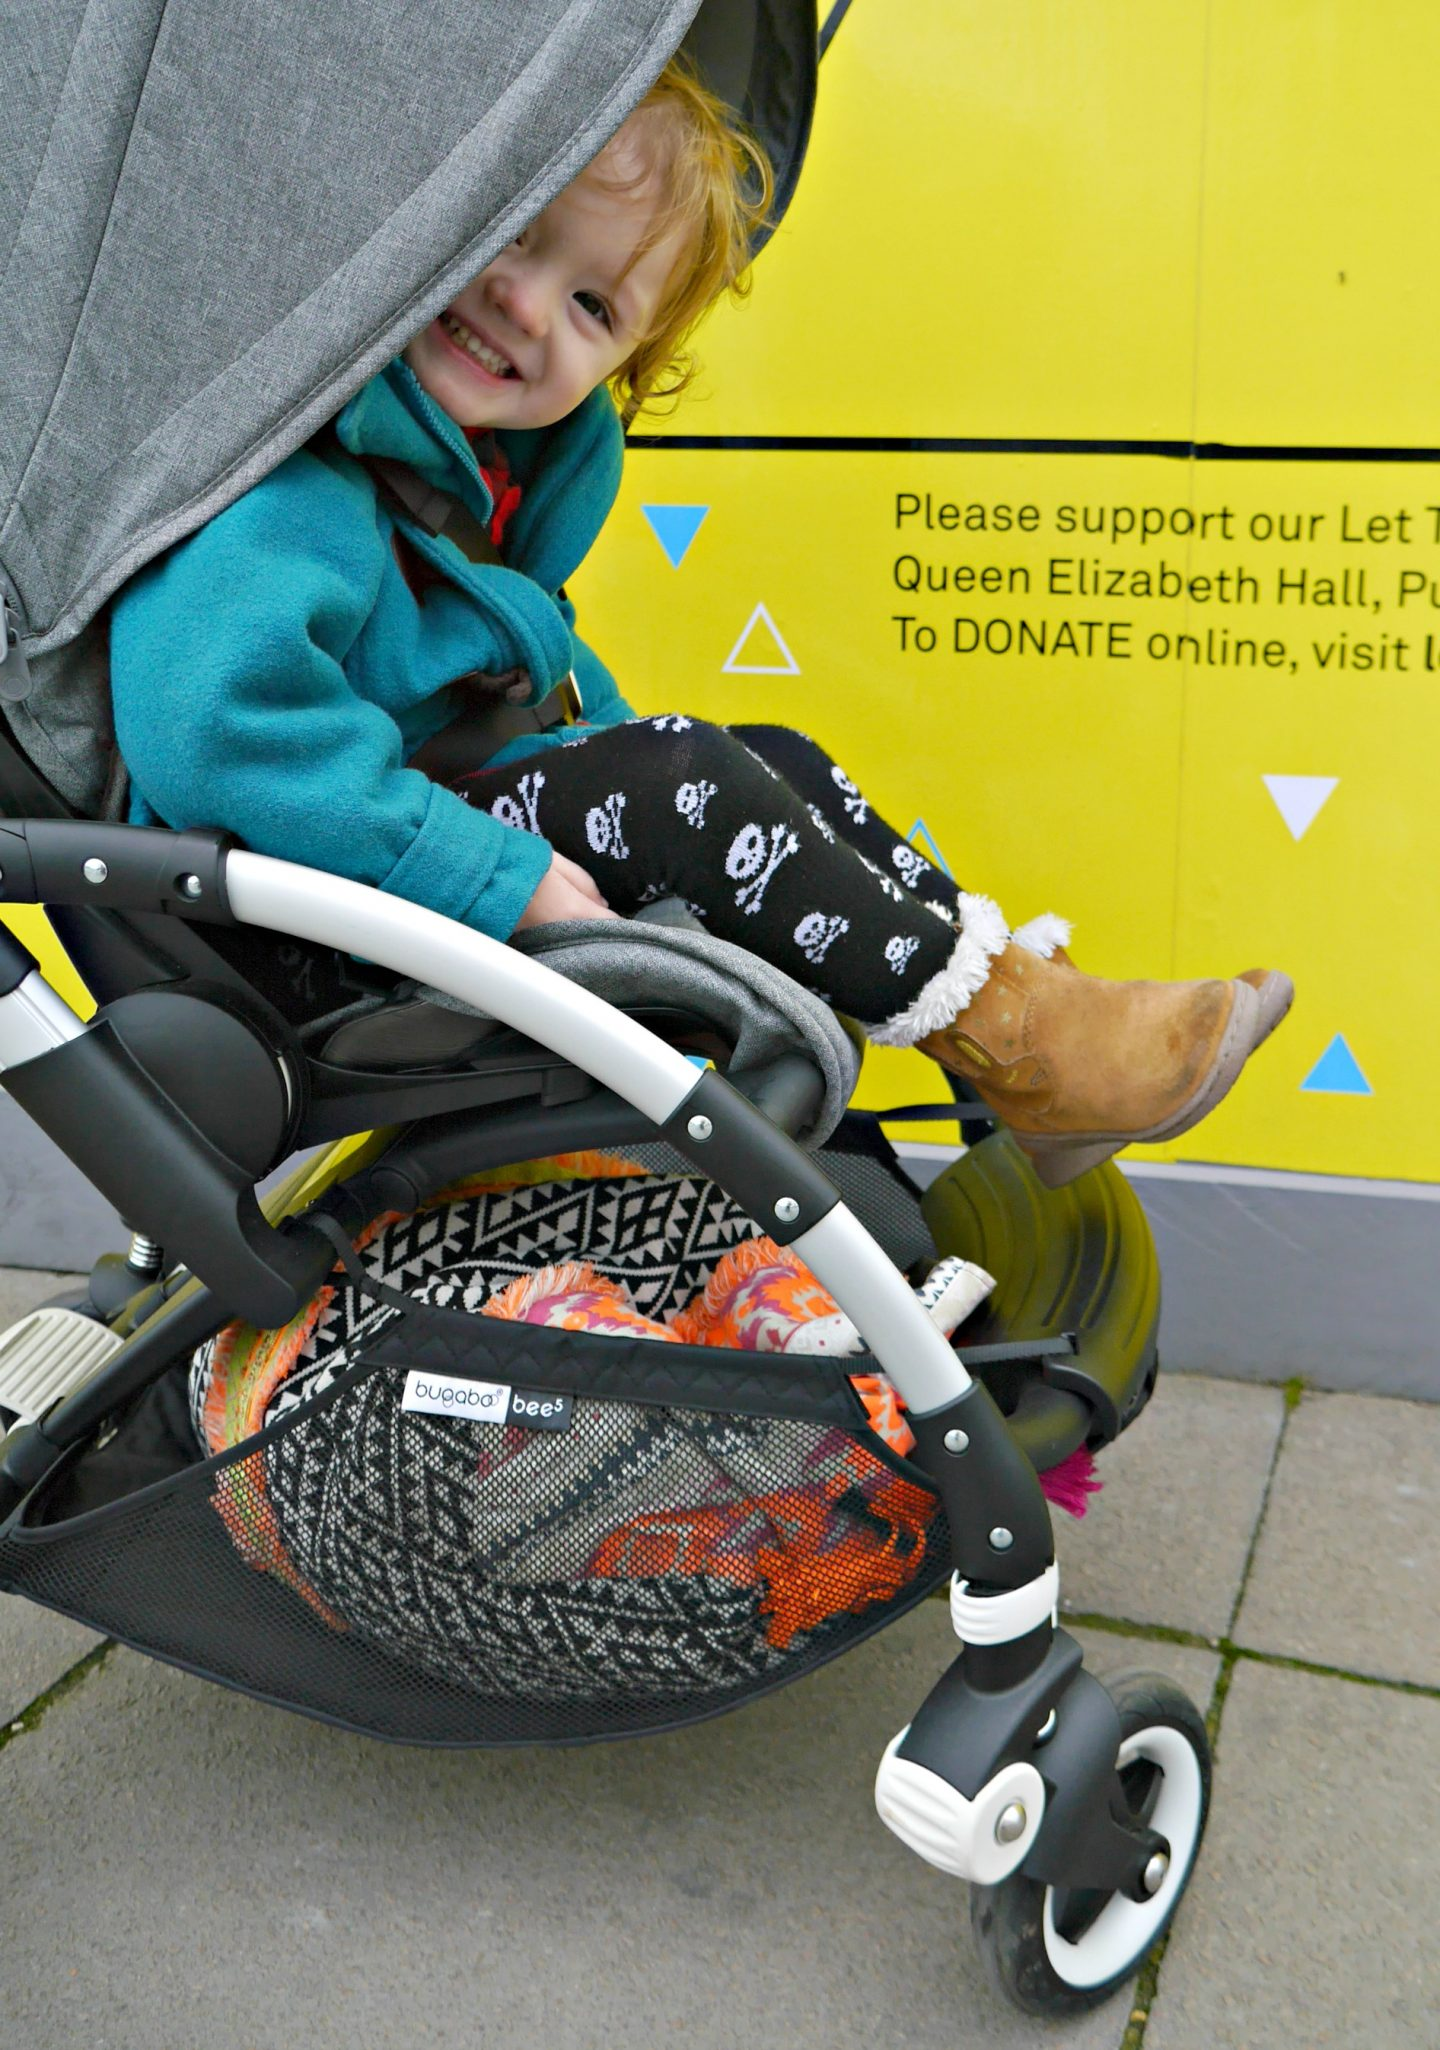 Bugaboo Bee 5 - a lightweight city pram that's small and easy to carry